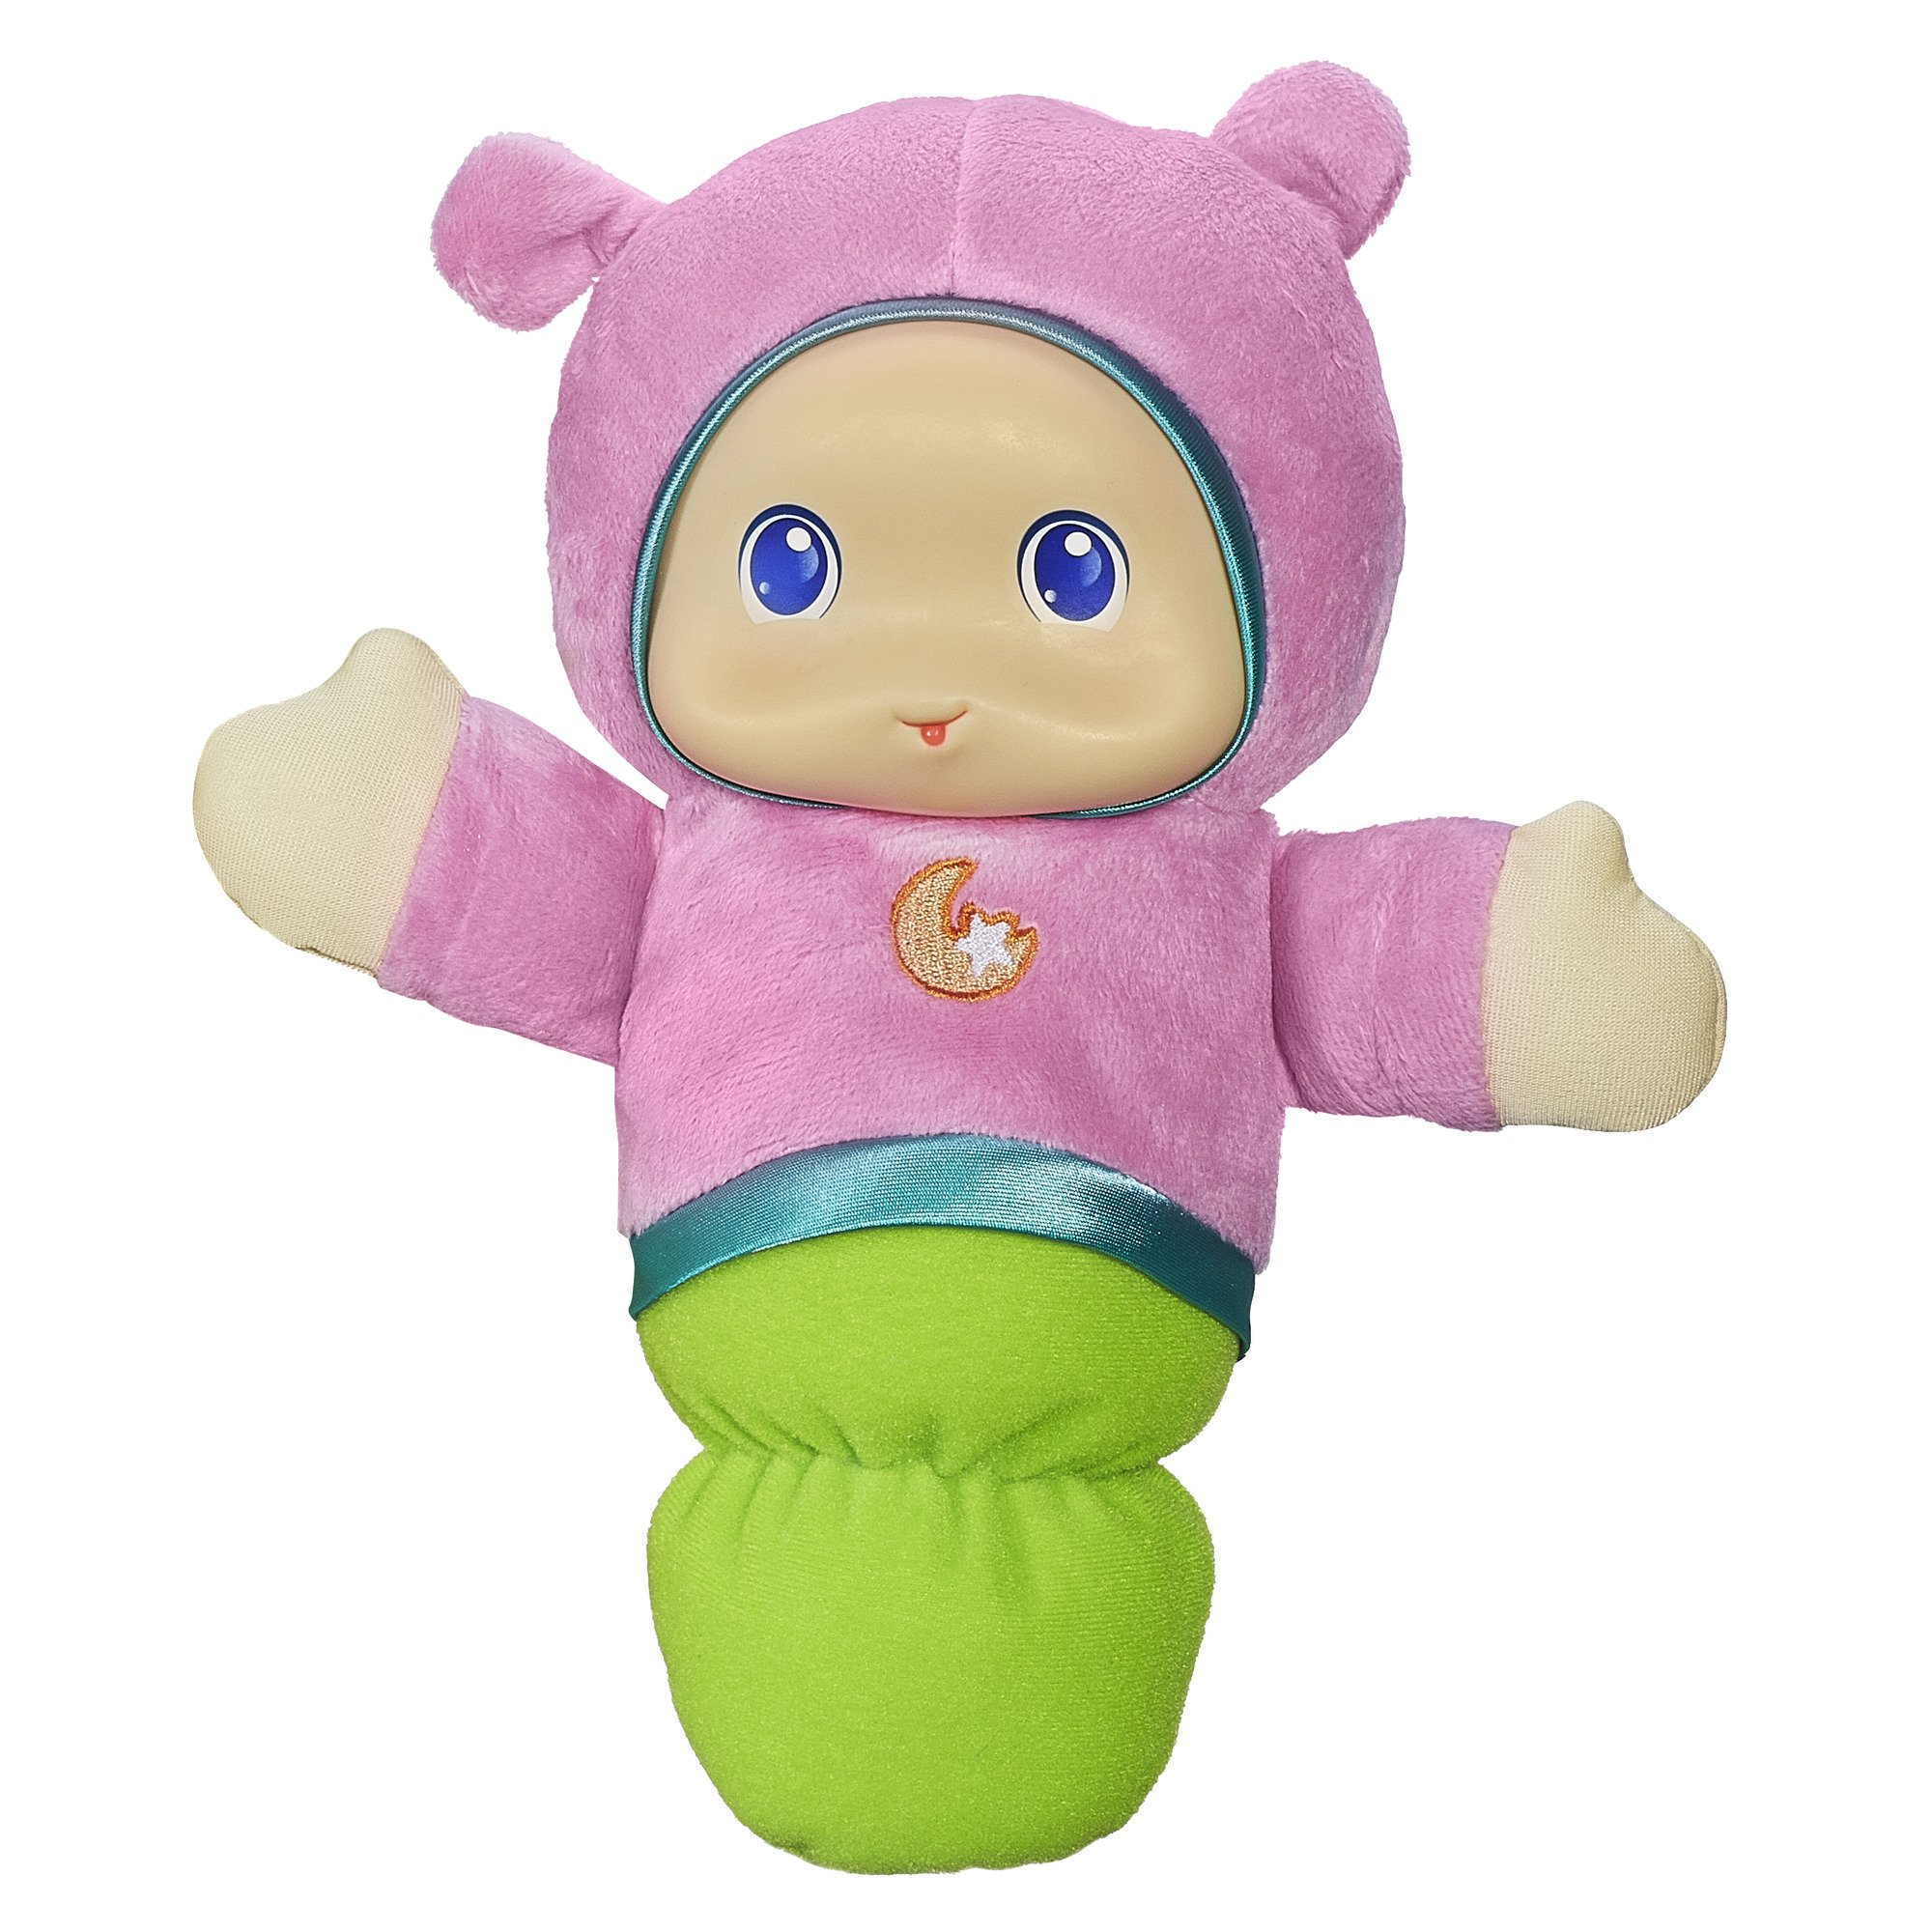 Playskool Lullaby Gloworm Toy, Pink (Amazon Exclusive) by Playskool (Image #1)